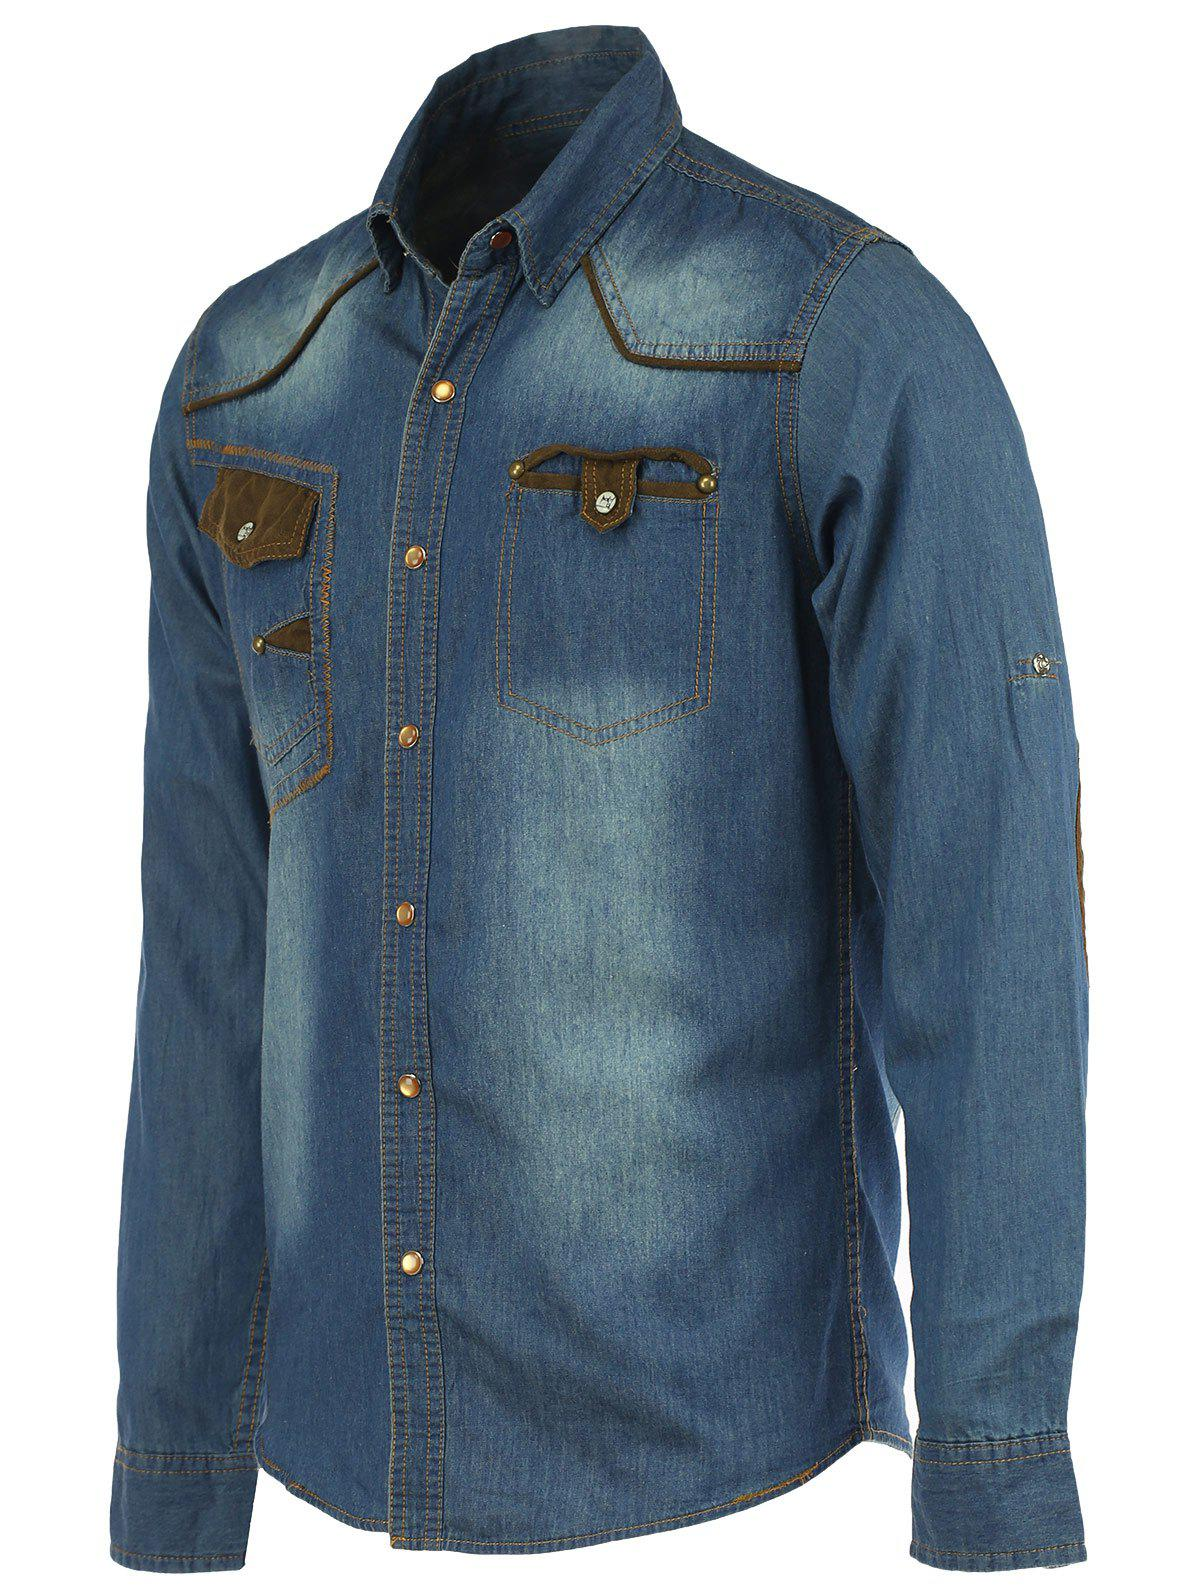 Suede Splicing Pockets Long Sleeve Denim Shirt - LIGHT BLUE M